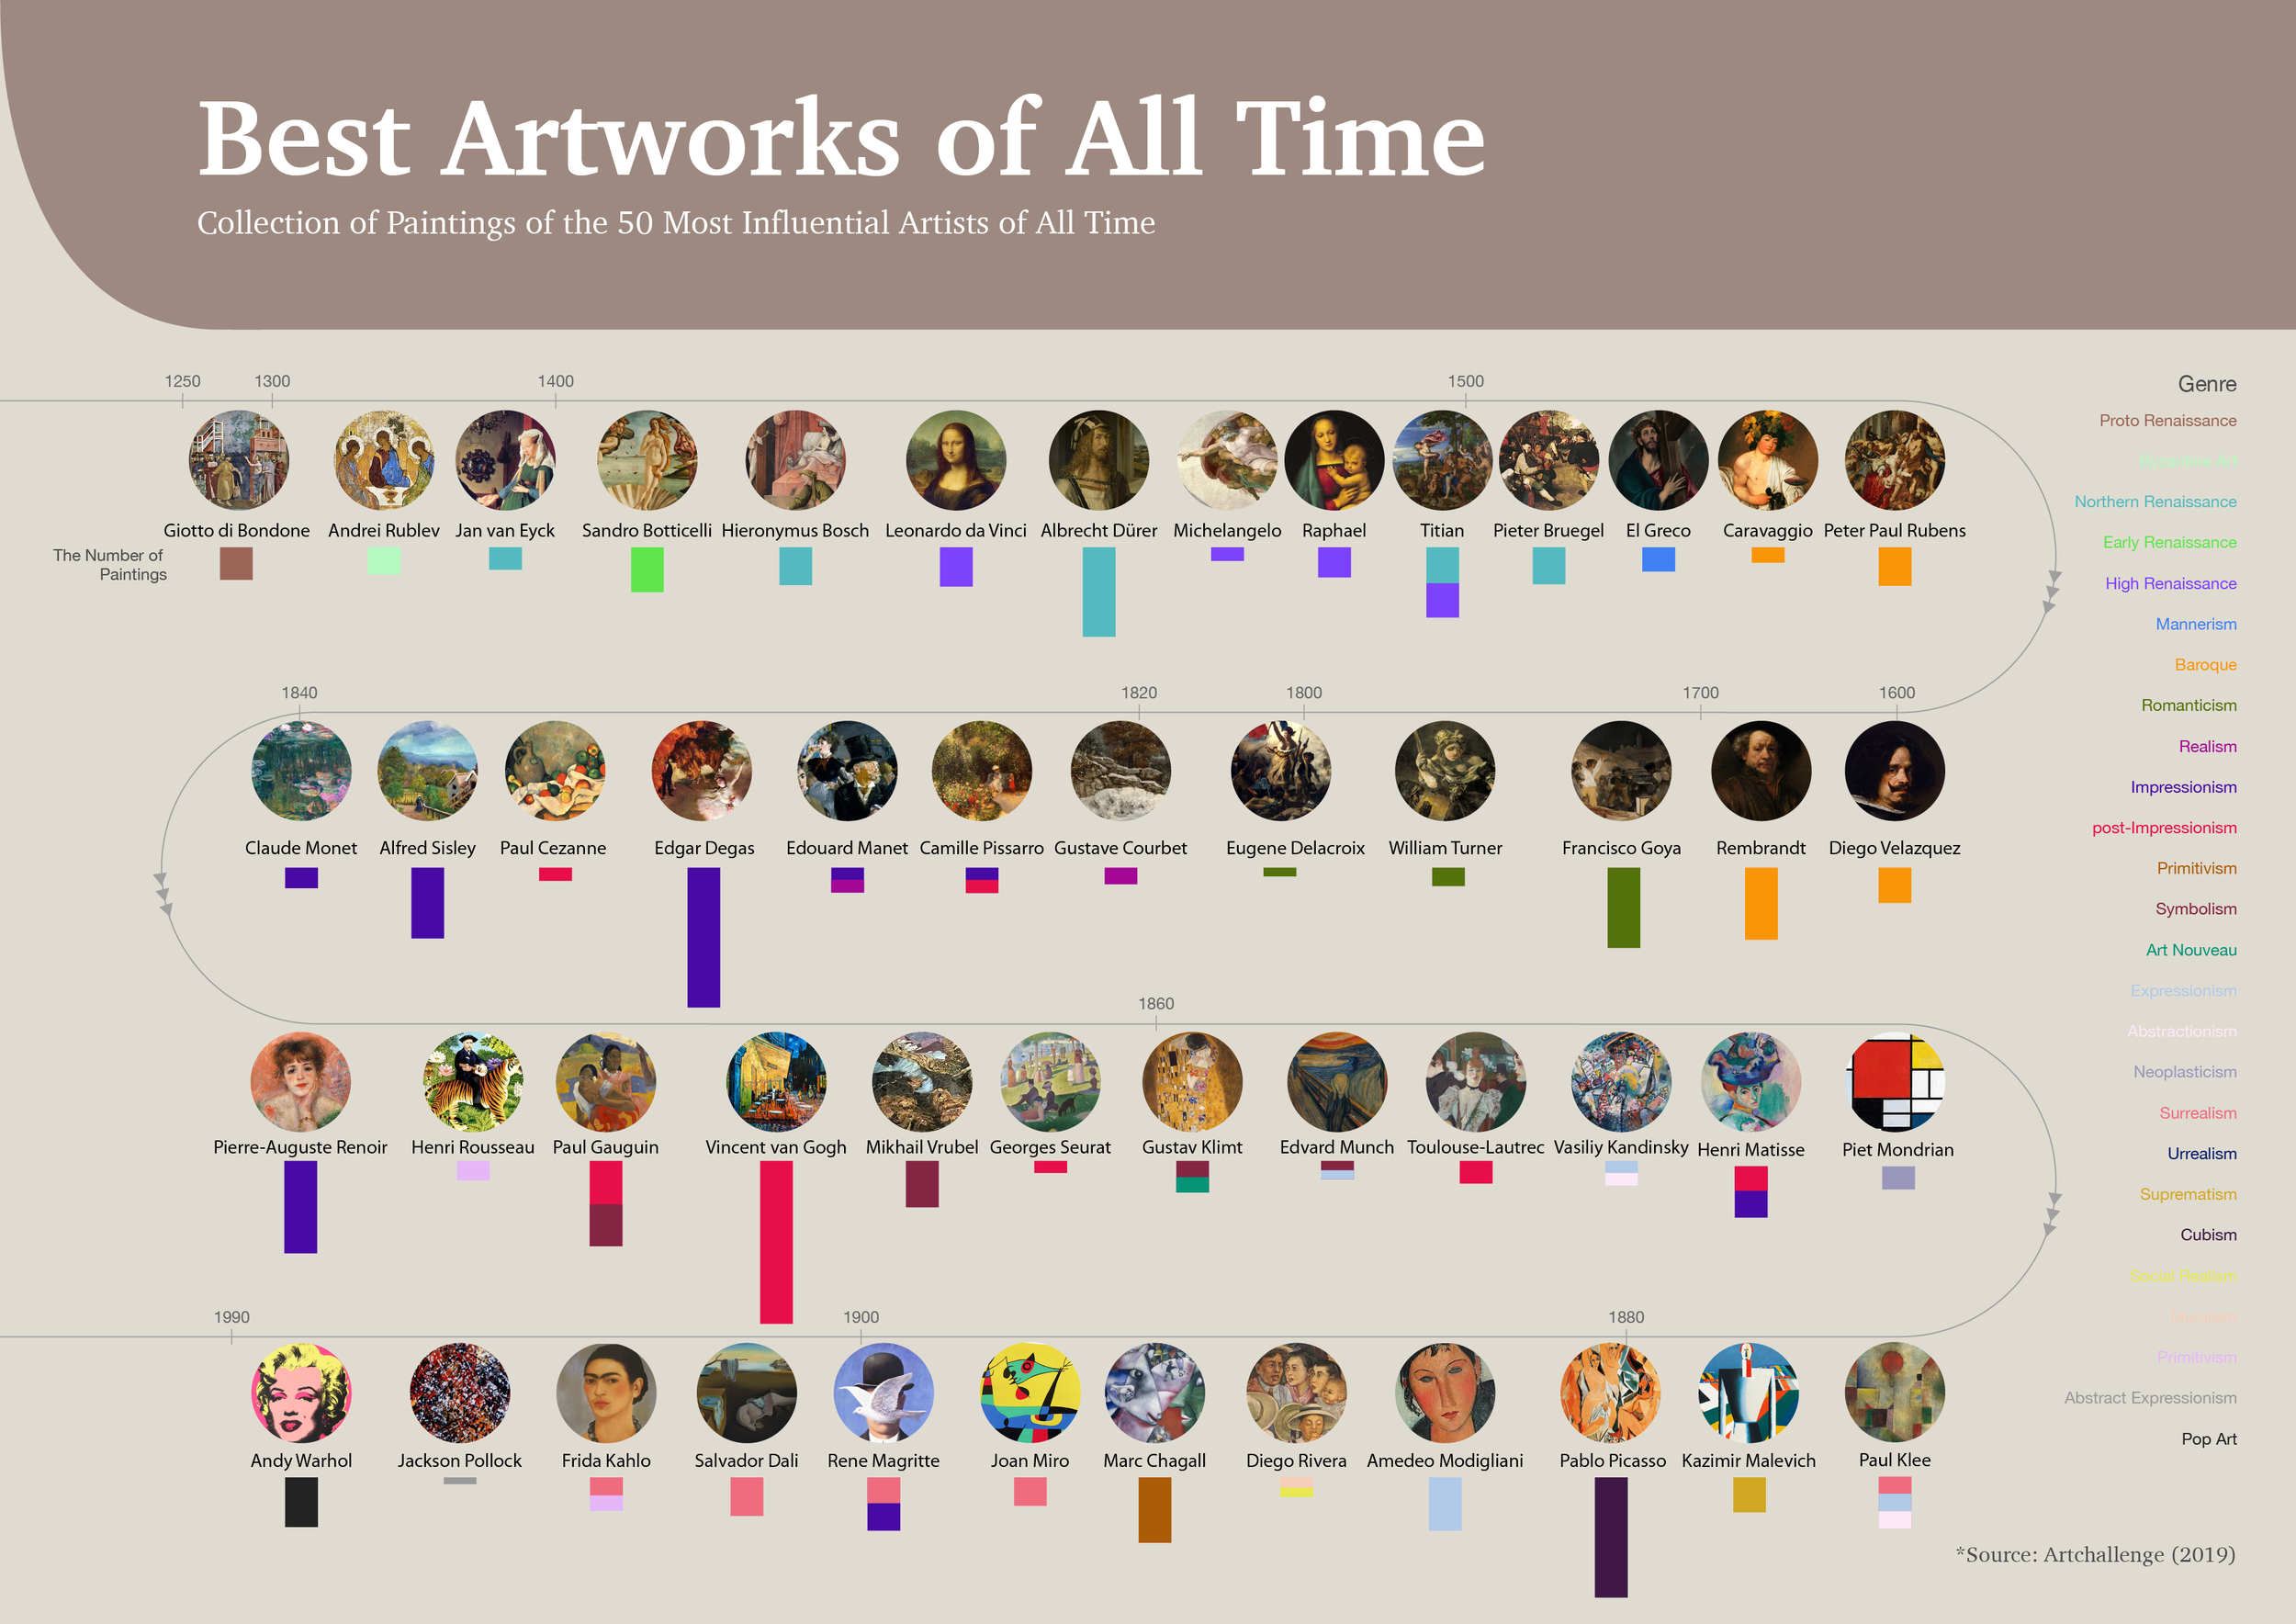 Best Artworks of All Time